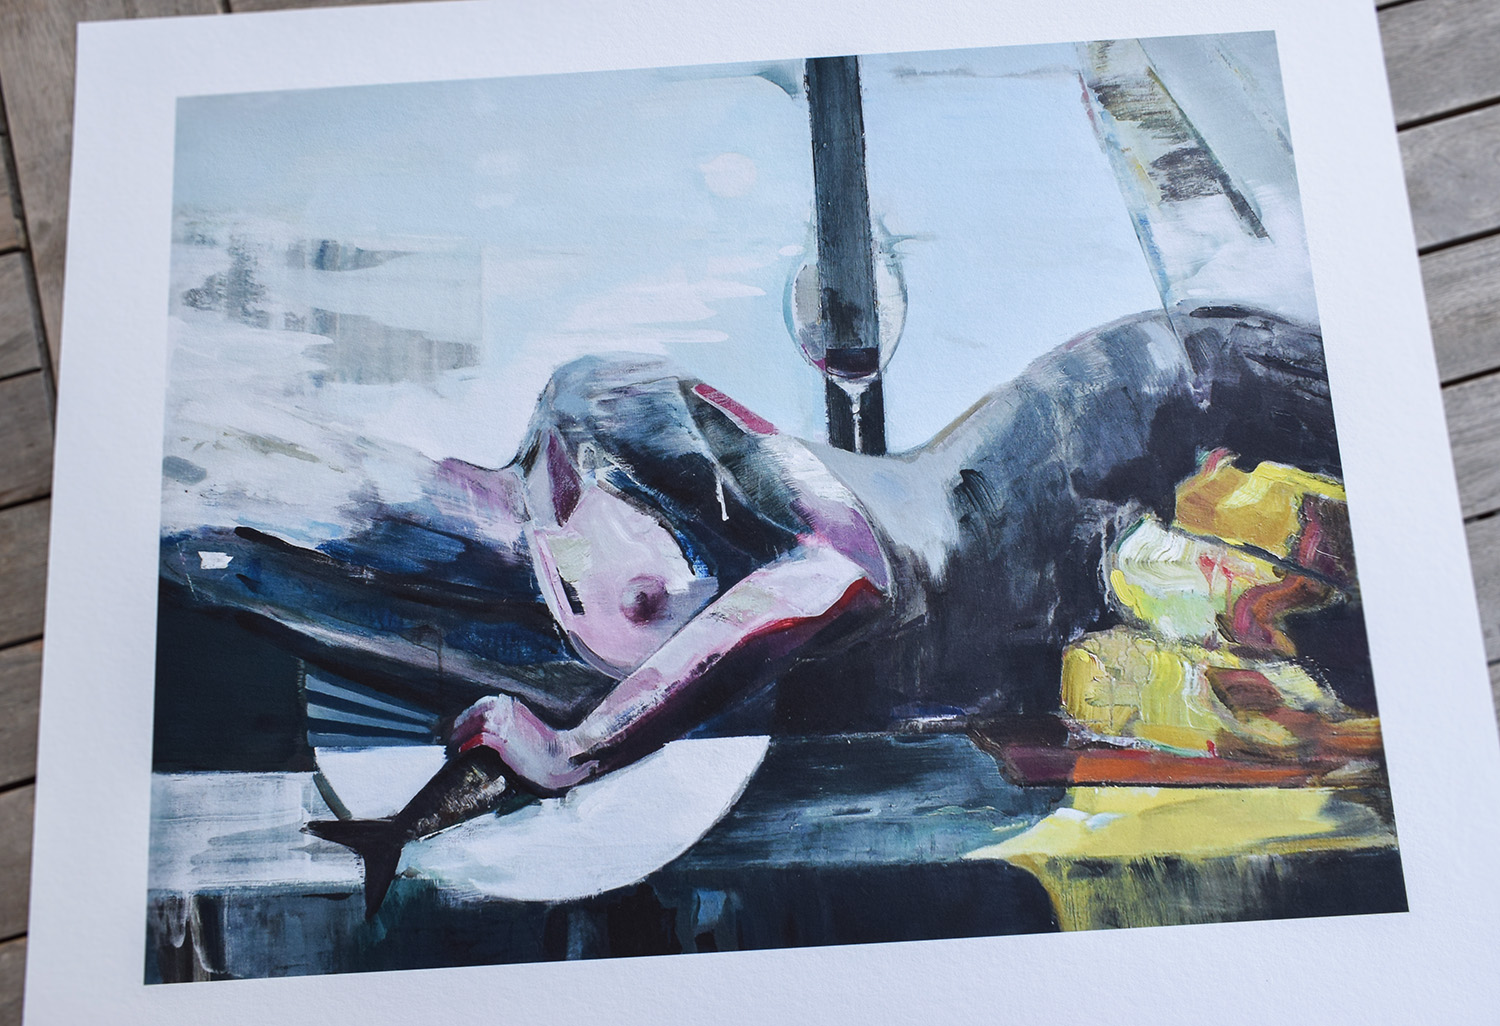 The supper -  limited edition fine art print by marck fink horse woman graphics ocean sea